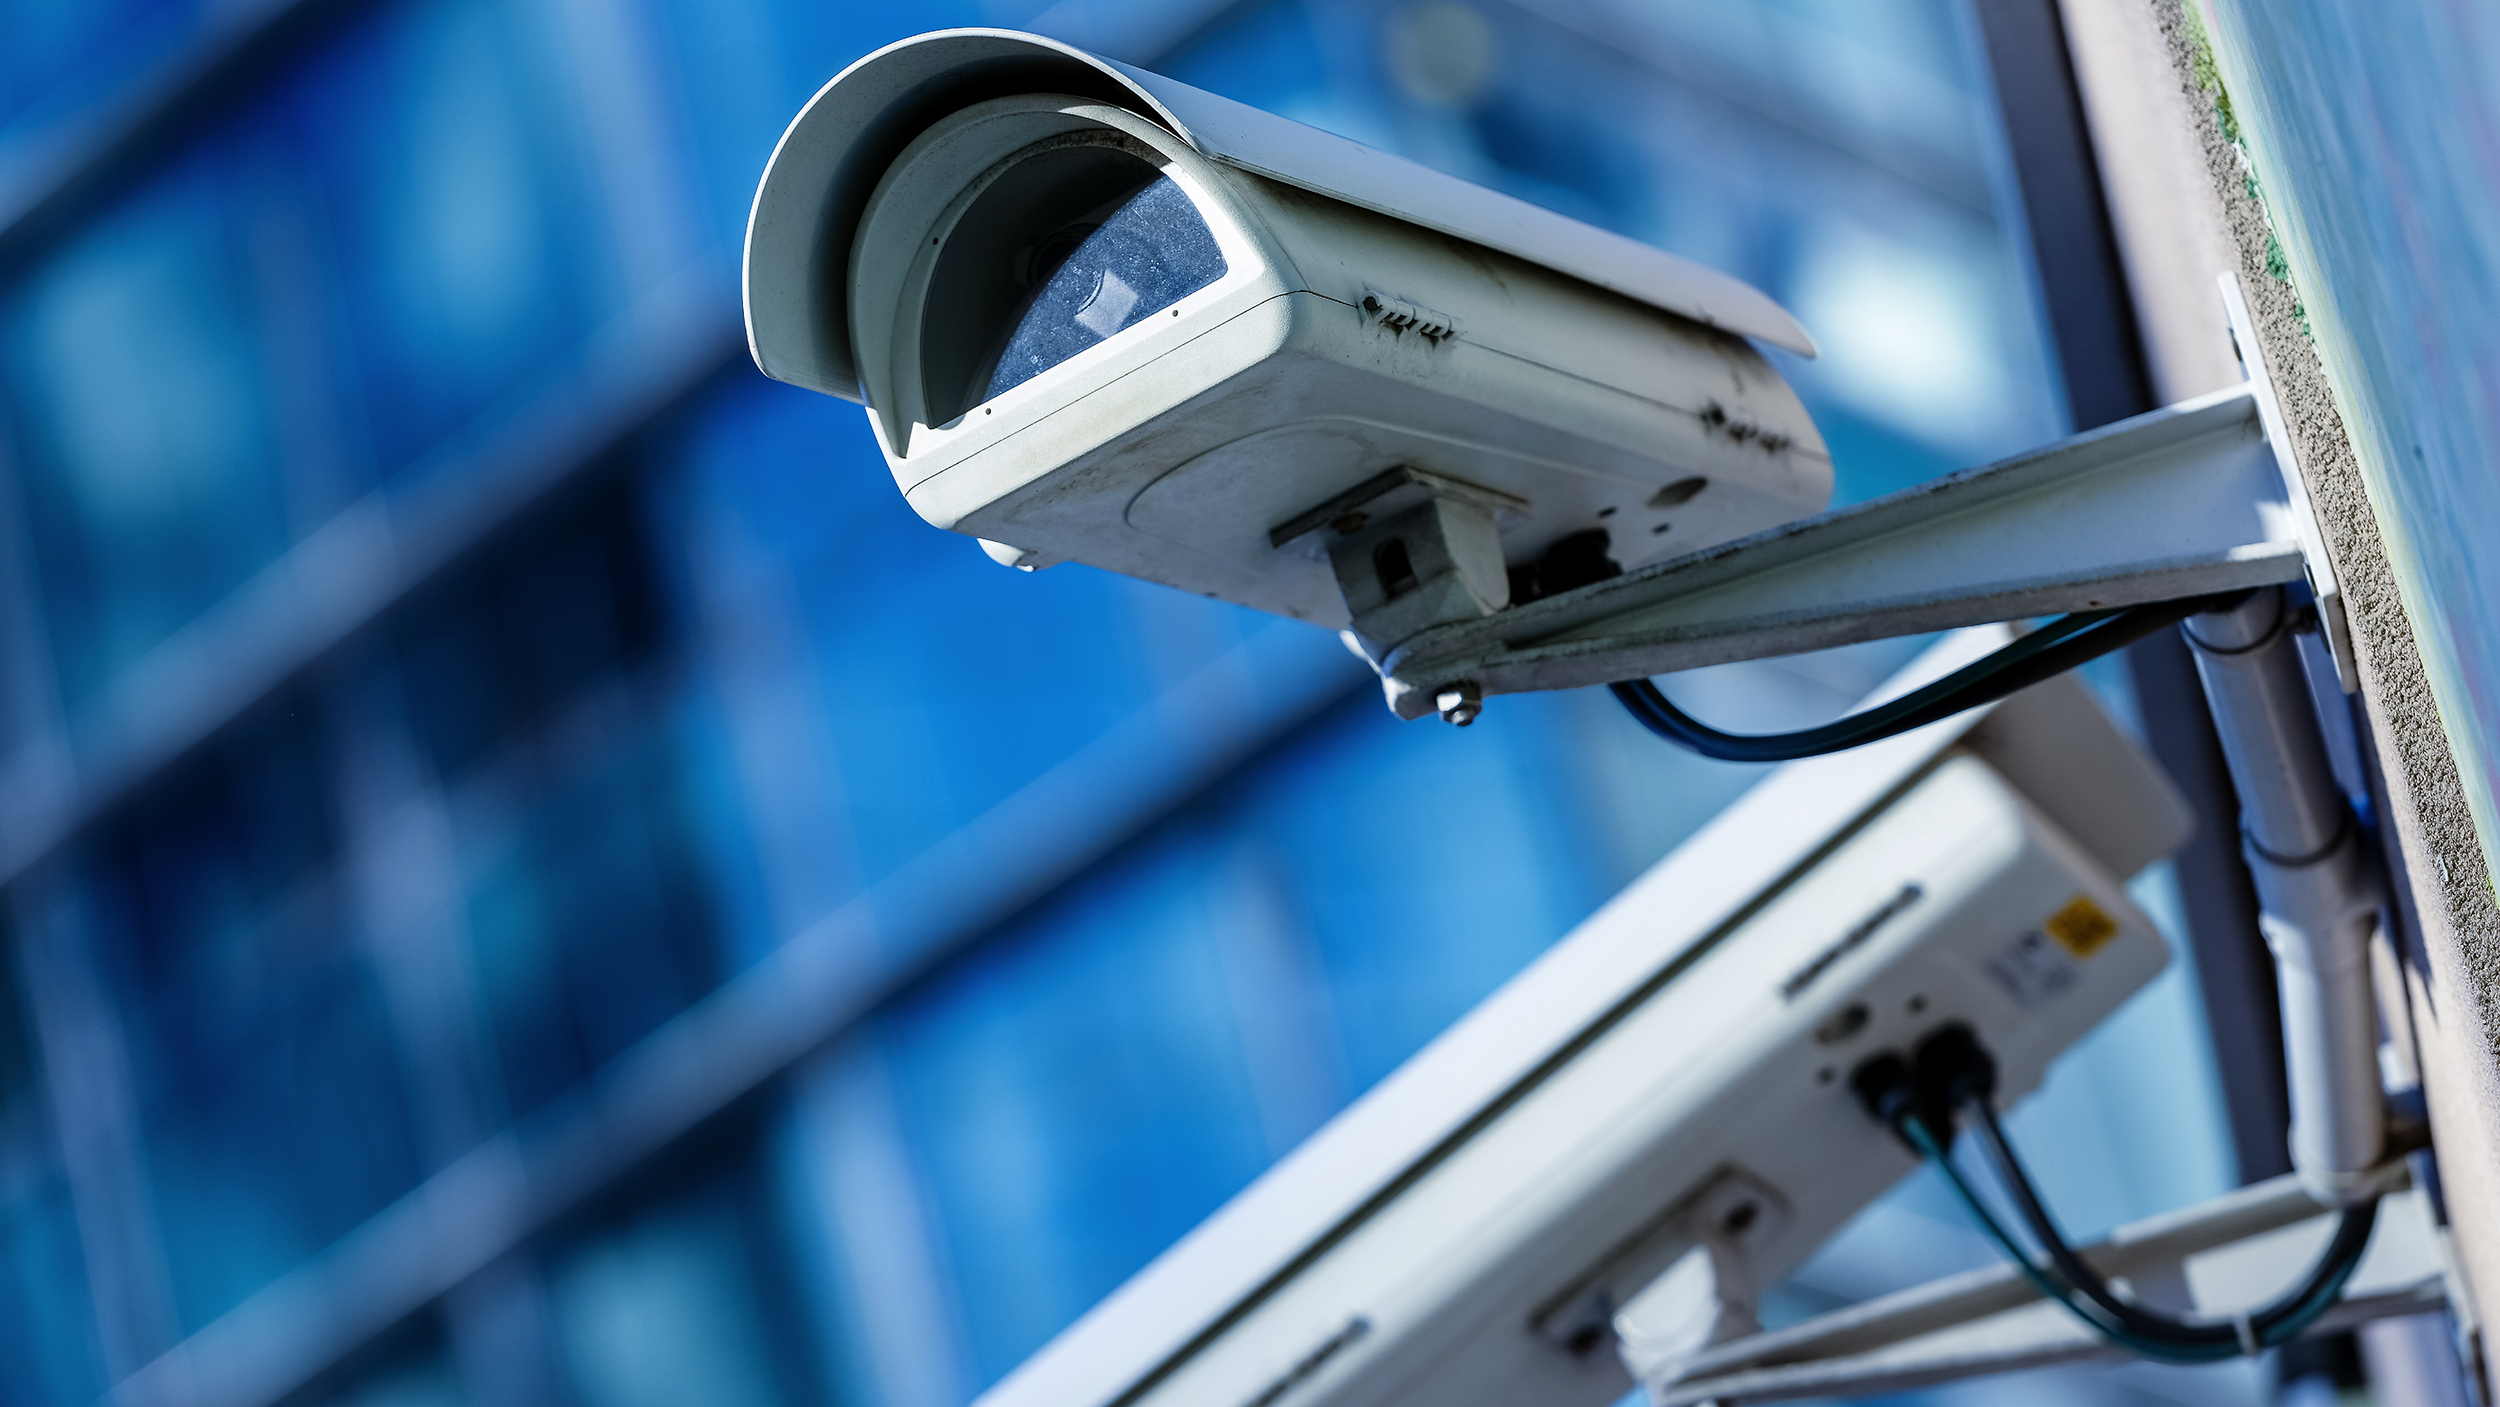 Emerging infrastructure: The future of video analytics